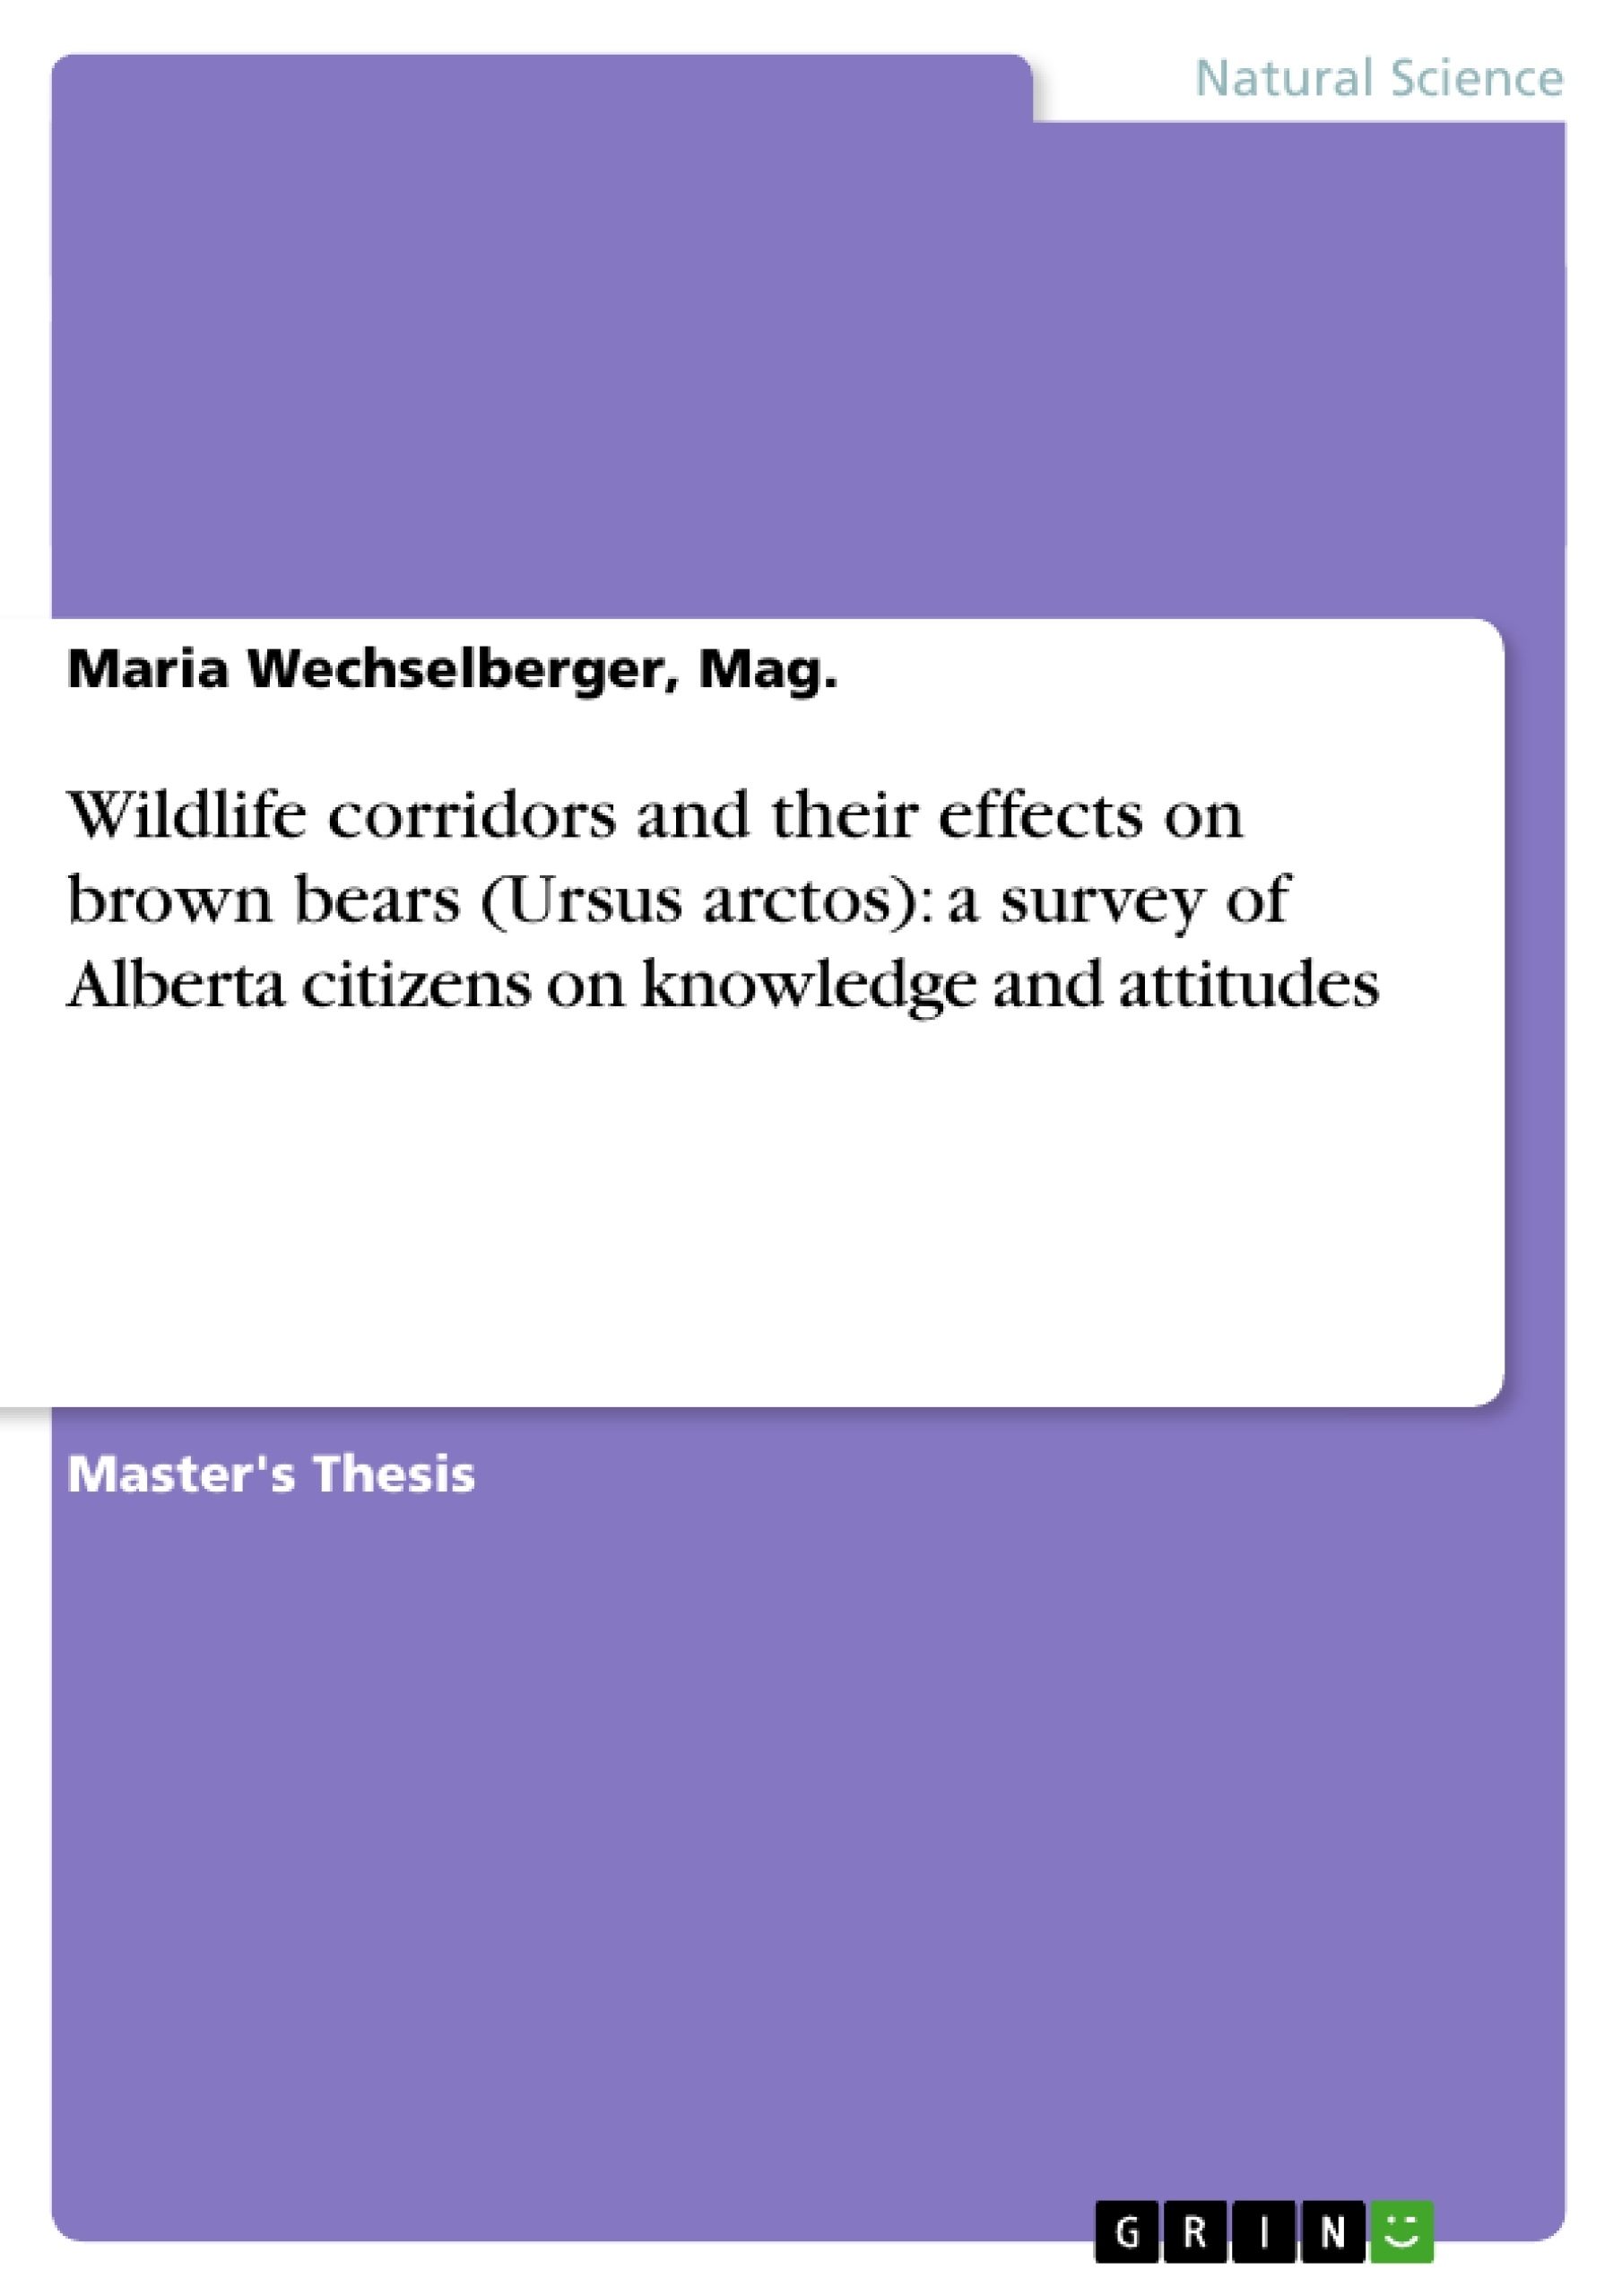 Title: Wildlife corridors and their effects on brown bears (Ursus arctos): a survey of Alberta citizens on knowledge and attitudes